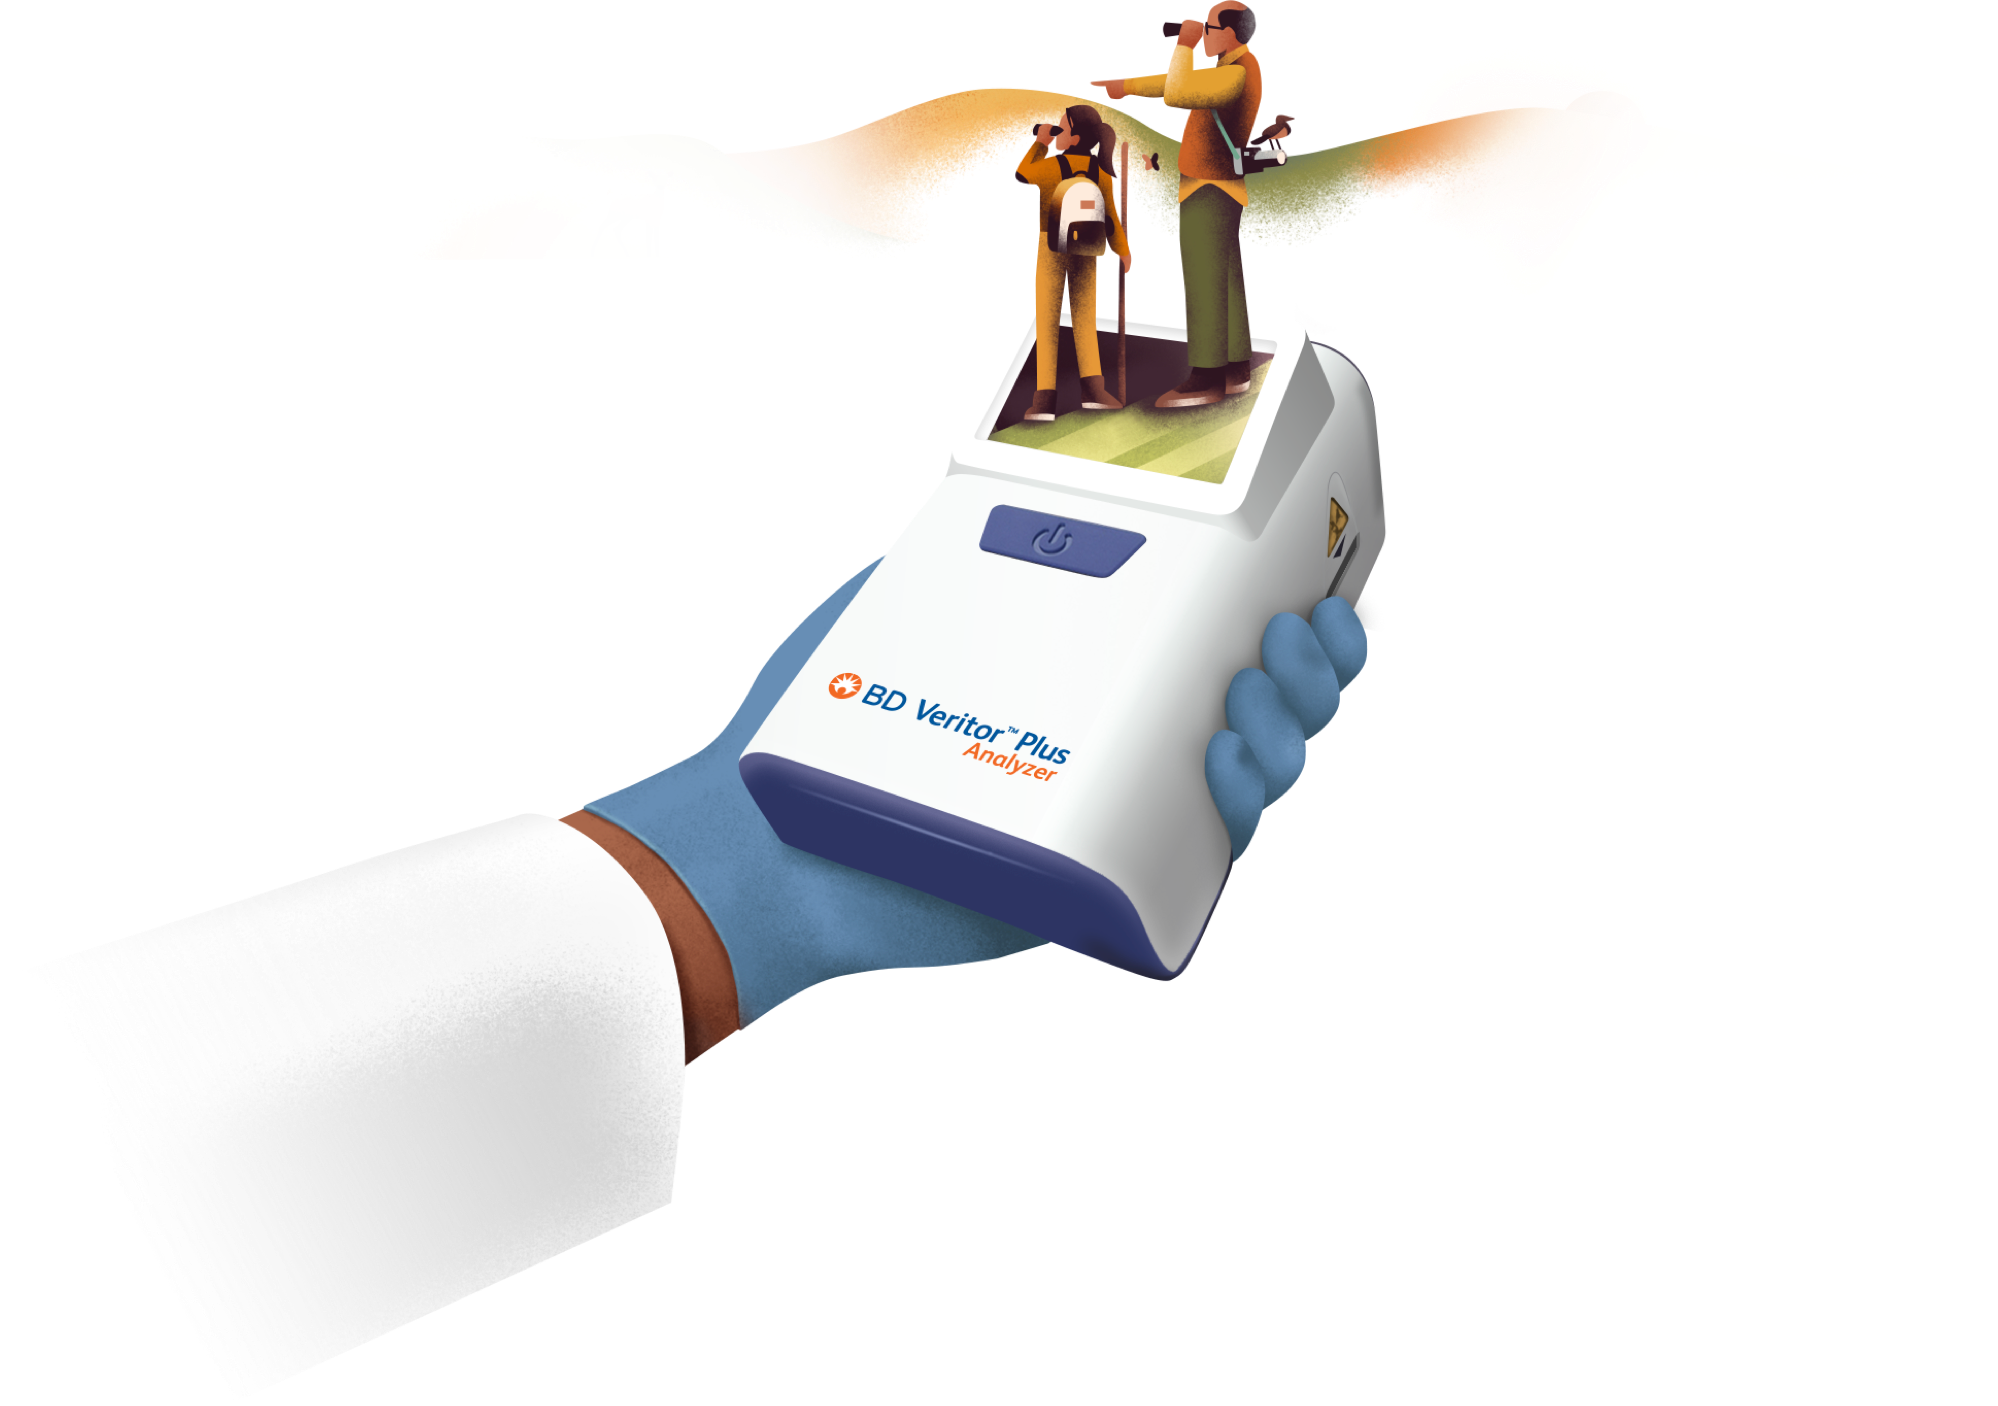 This image depicts a family enjoying life and a clinician's hand holding the BD Veritor Plus Analyzer